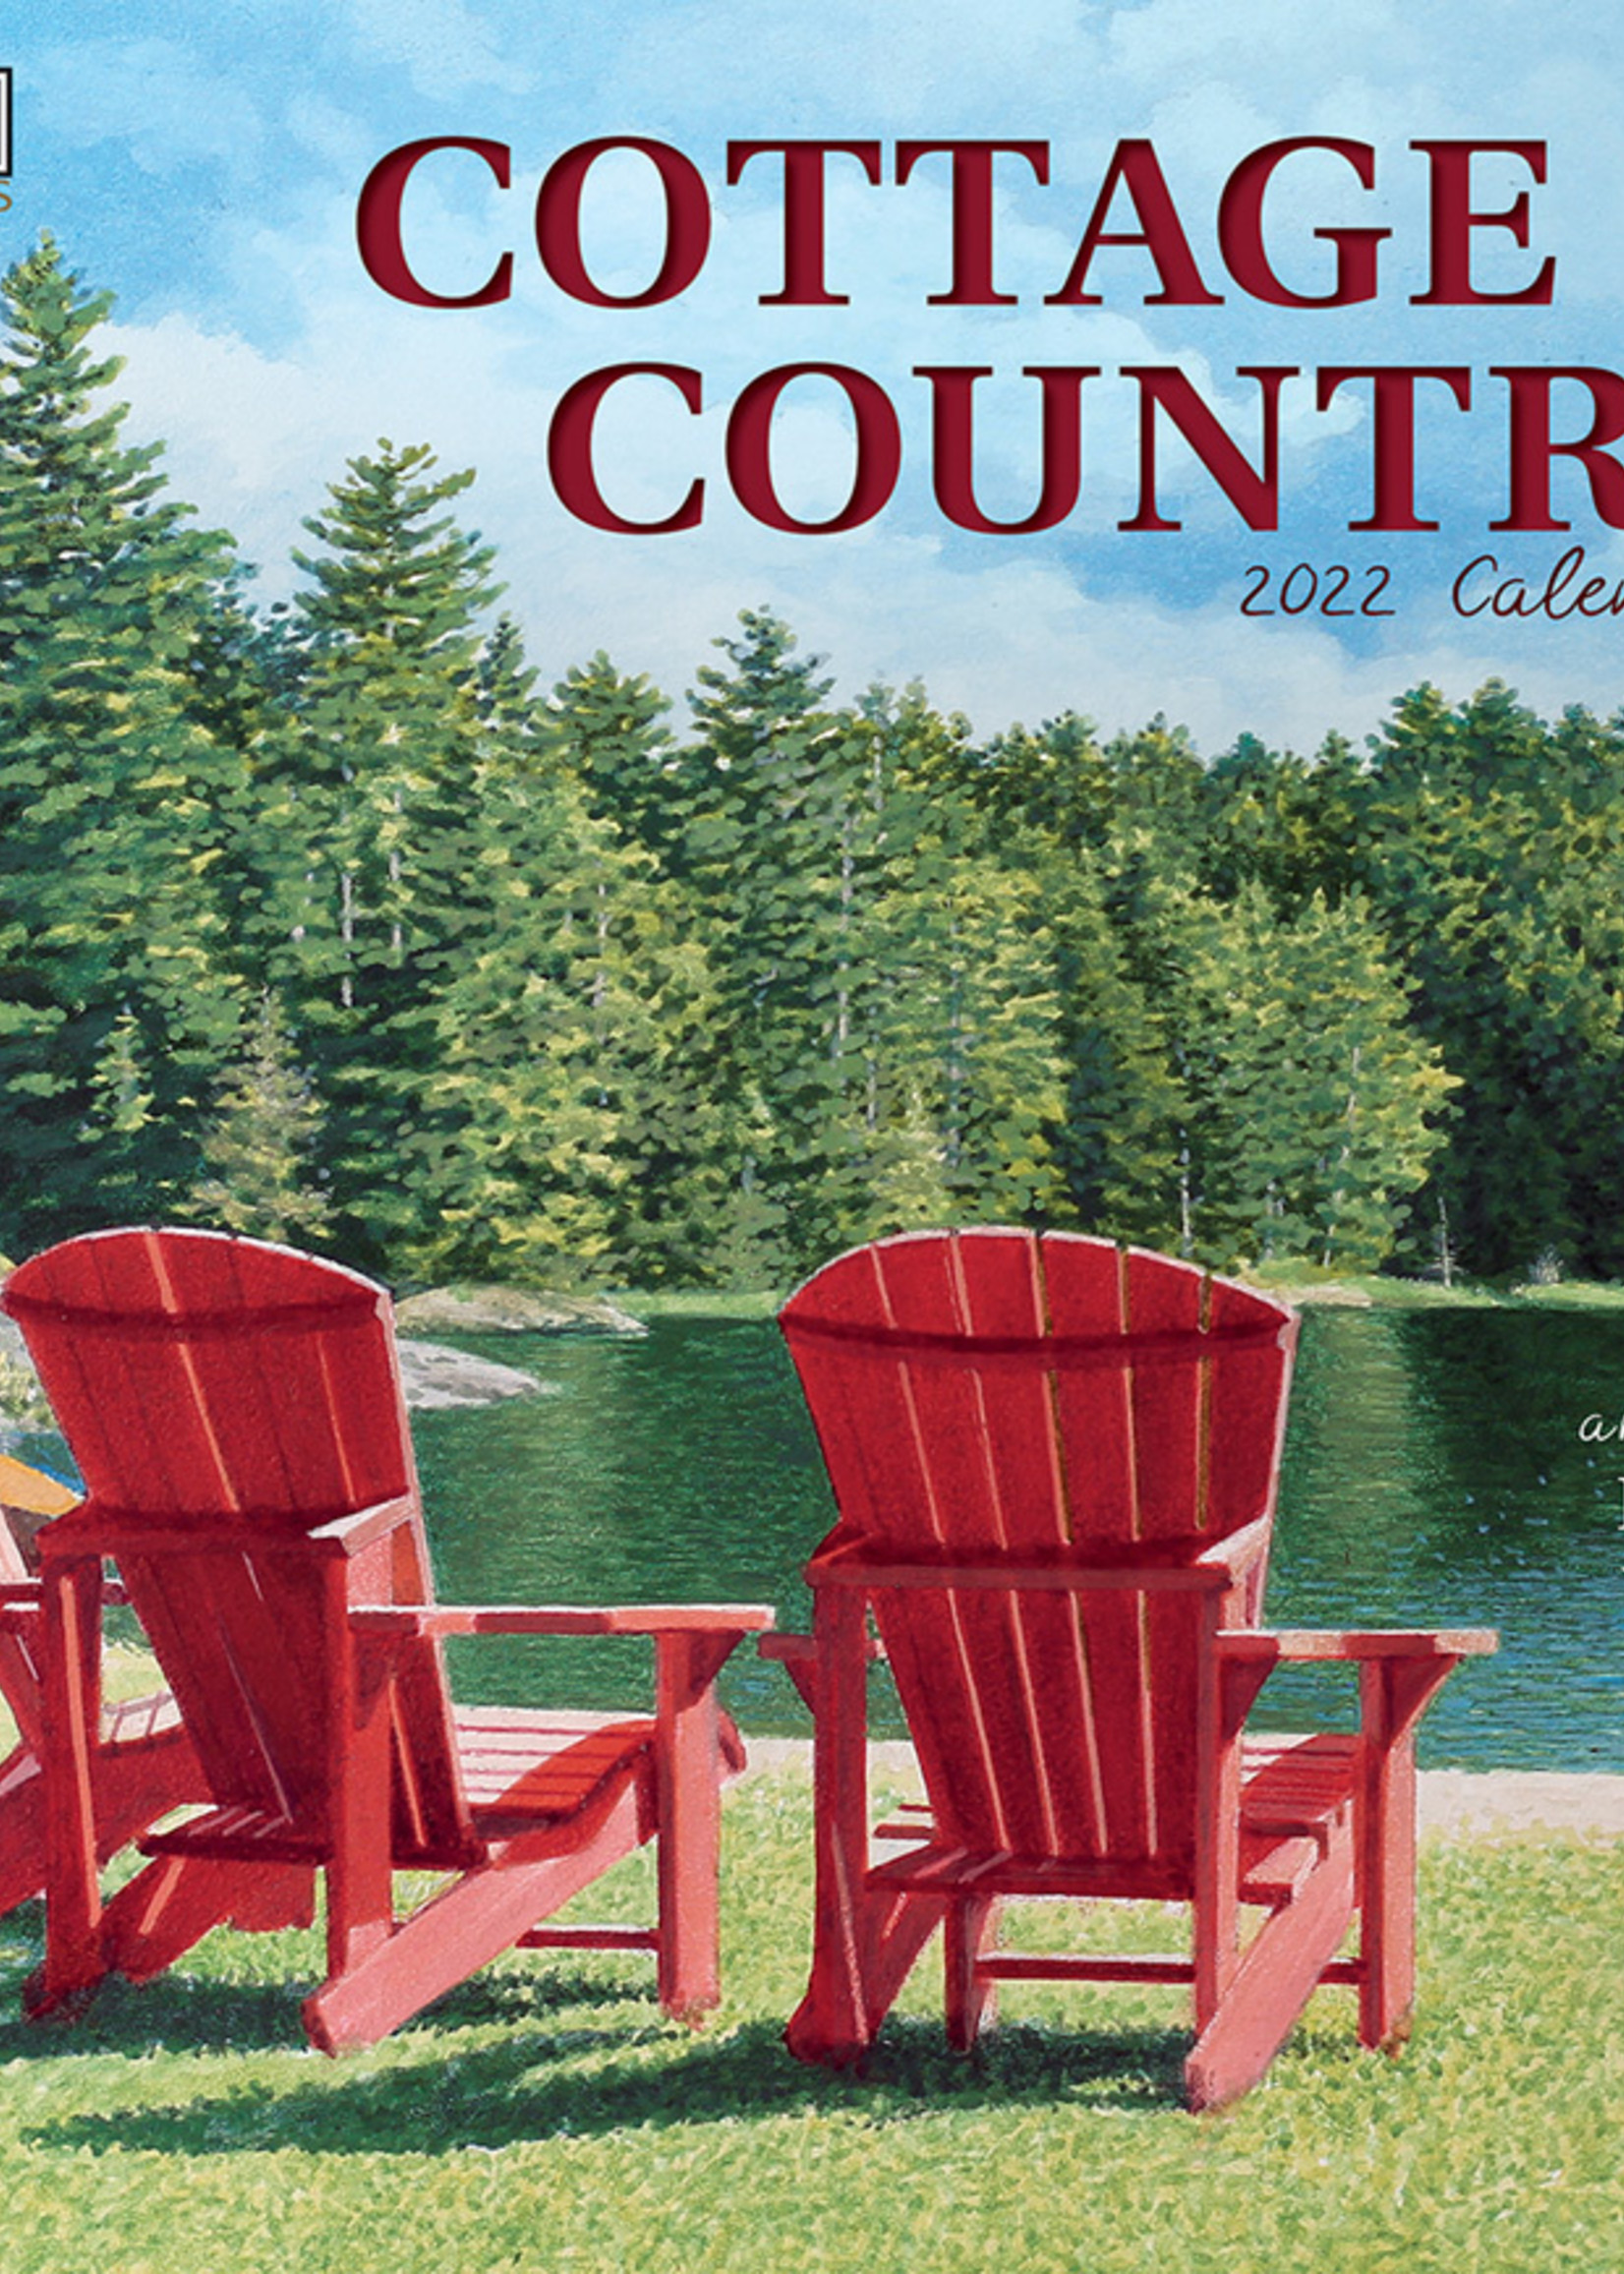 Cottage Country Calendar 2022